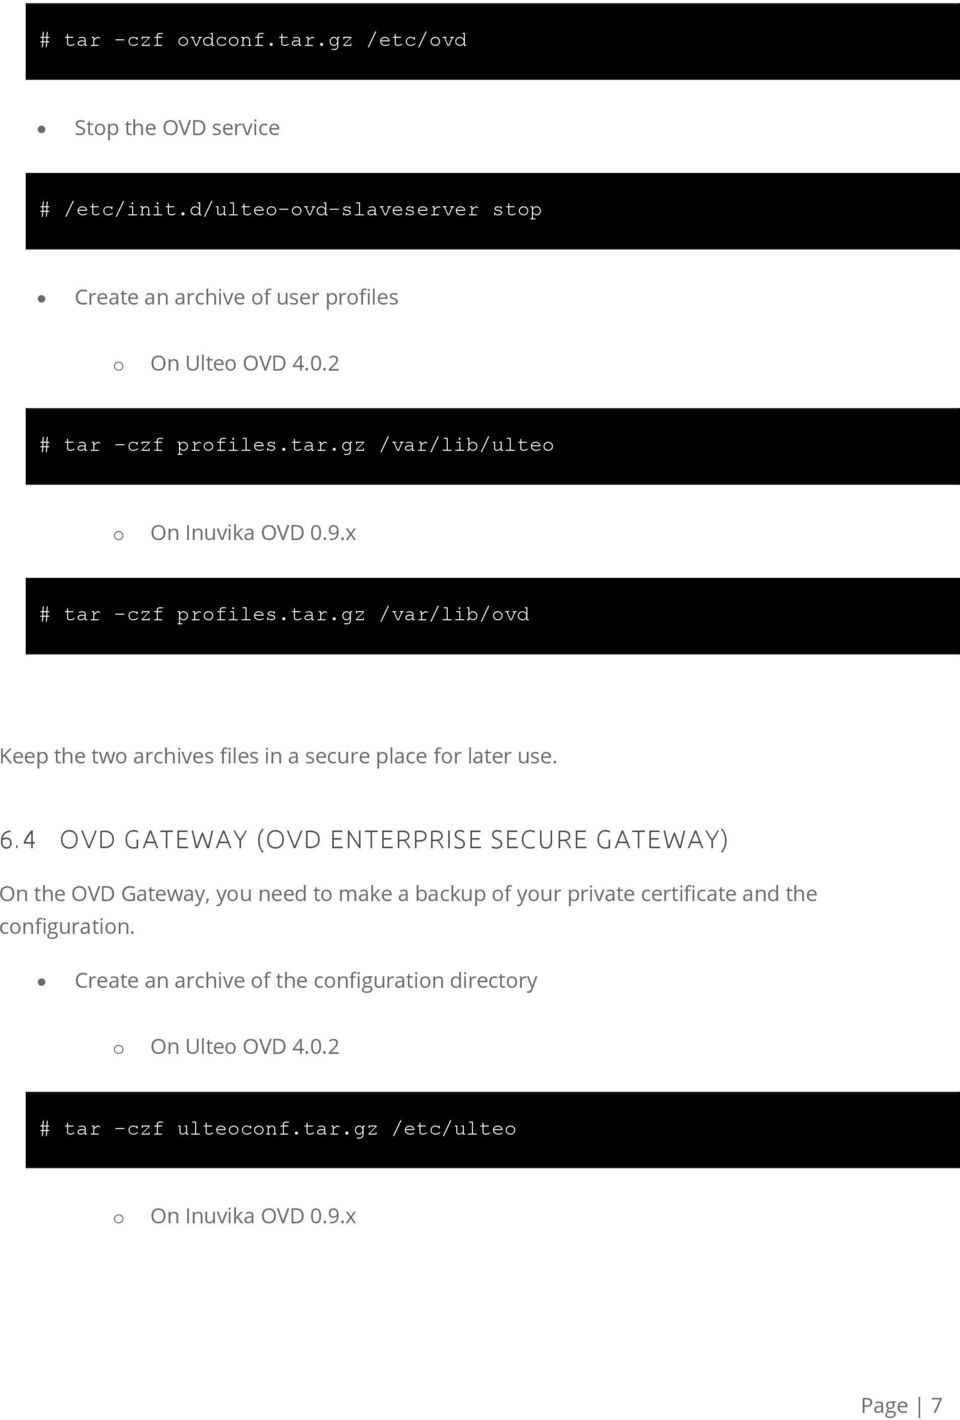 6.4 OVD GATEWAY (OVD ENTERPRISE SECURE GATEWAY) On the OVD Gateway, yu need t make a backup f yur private certificate and the cnfiguratin.